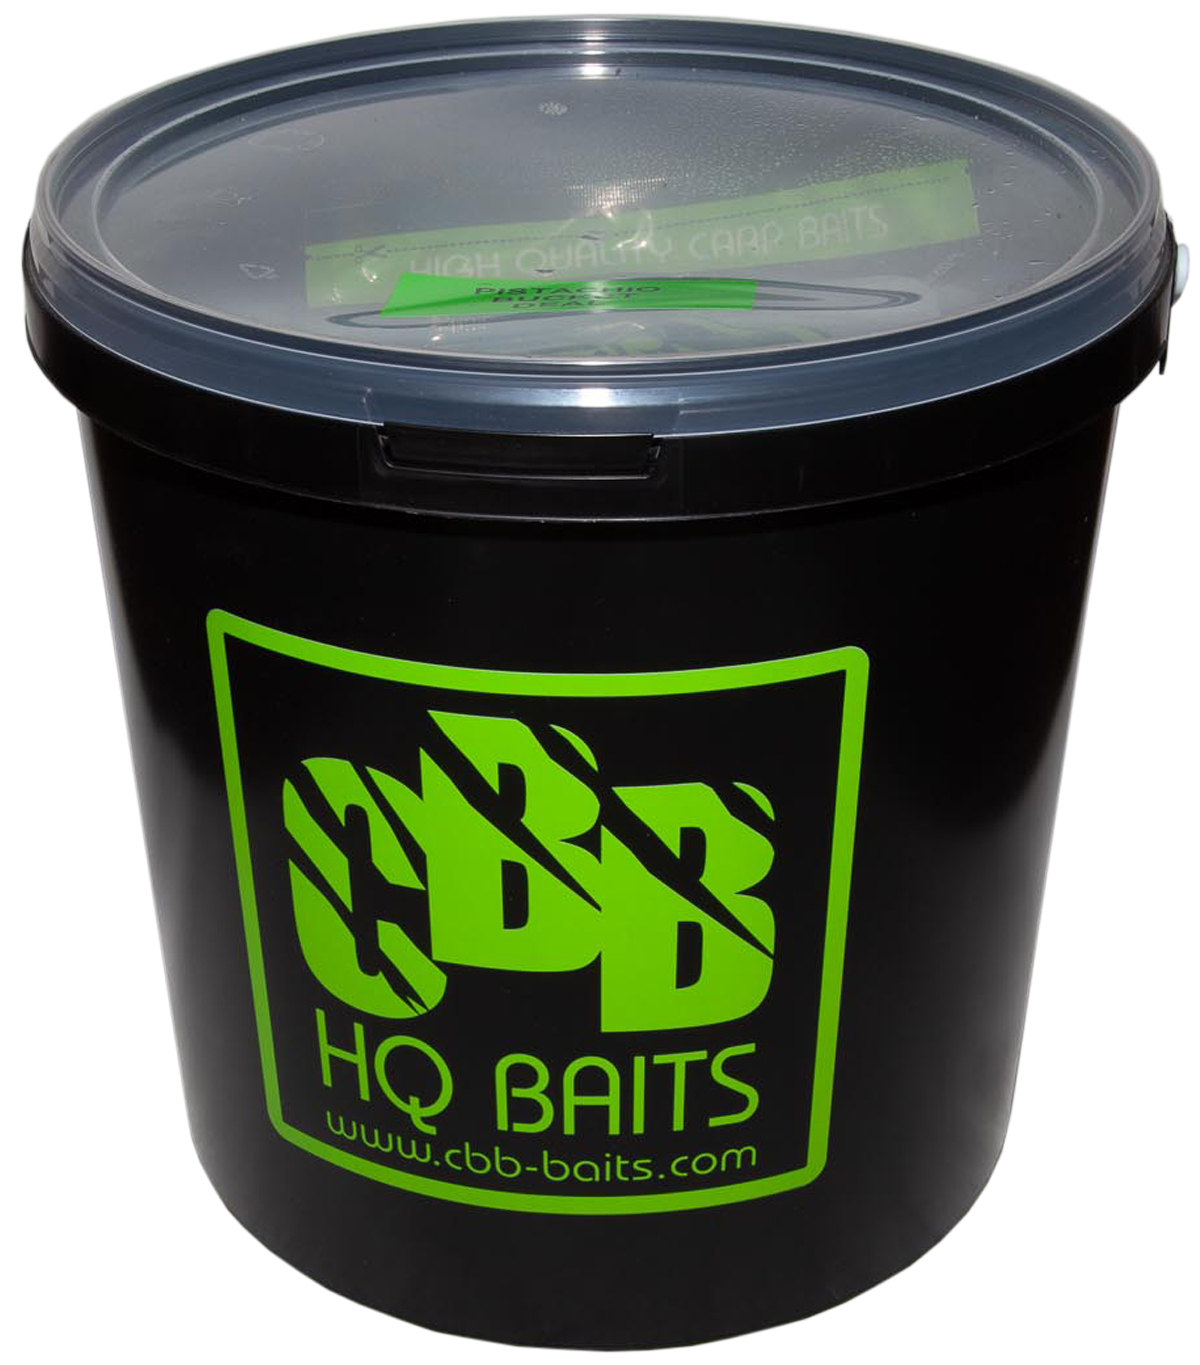 CBB Pistachio 'Ready To Fish' Bucket